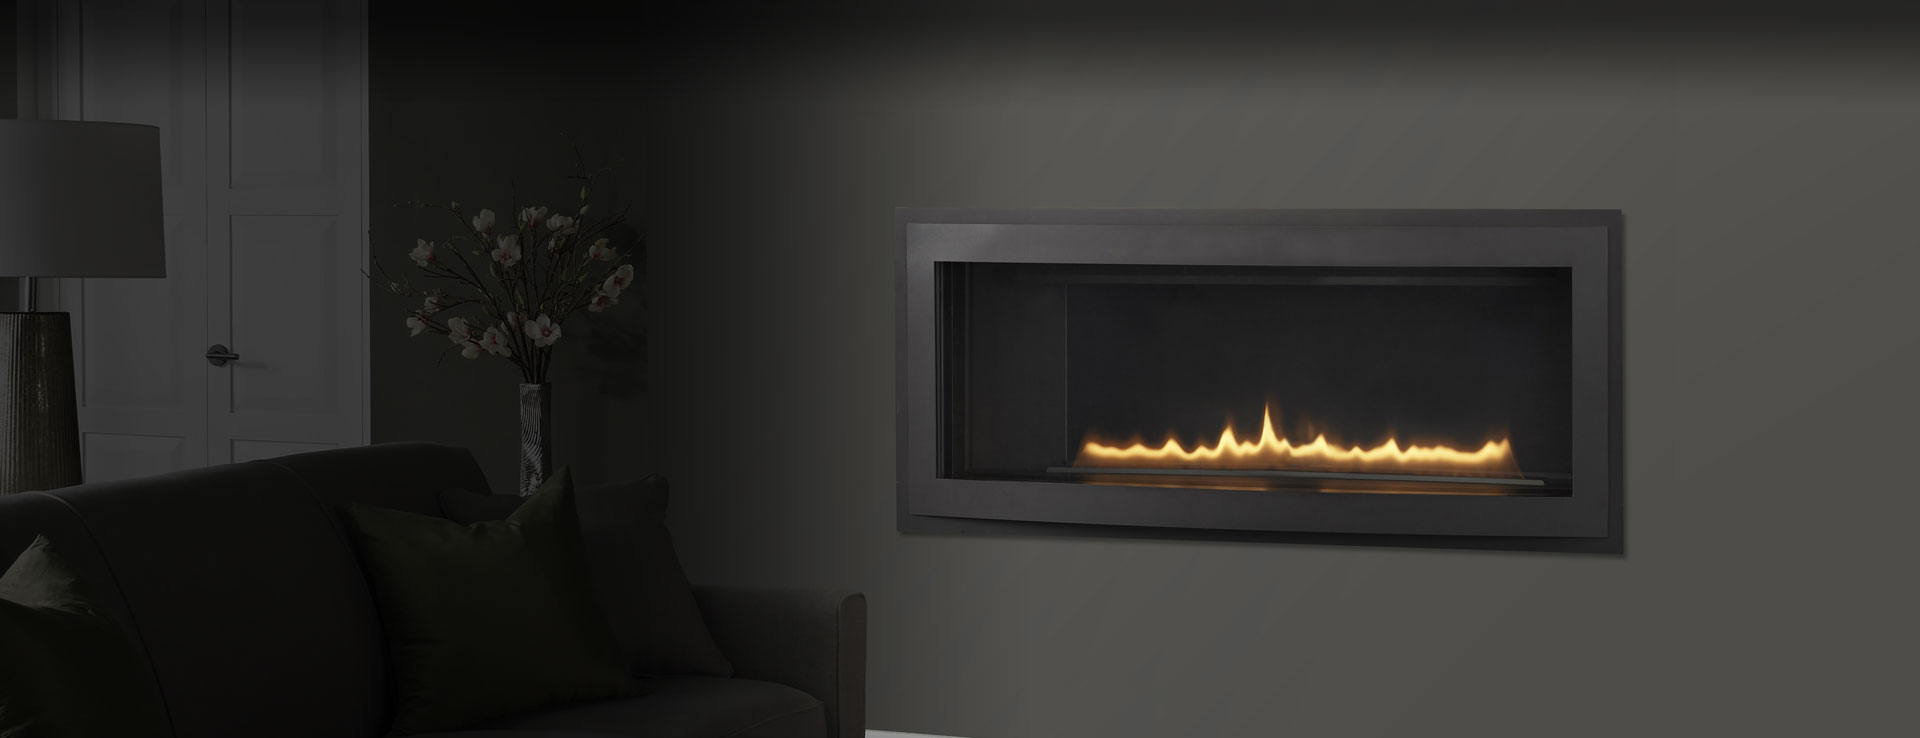 Heatilator Rave Series gas fireplace, available at Ferguson's Fireplace & Stove Center in Traverse City, Michigan.